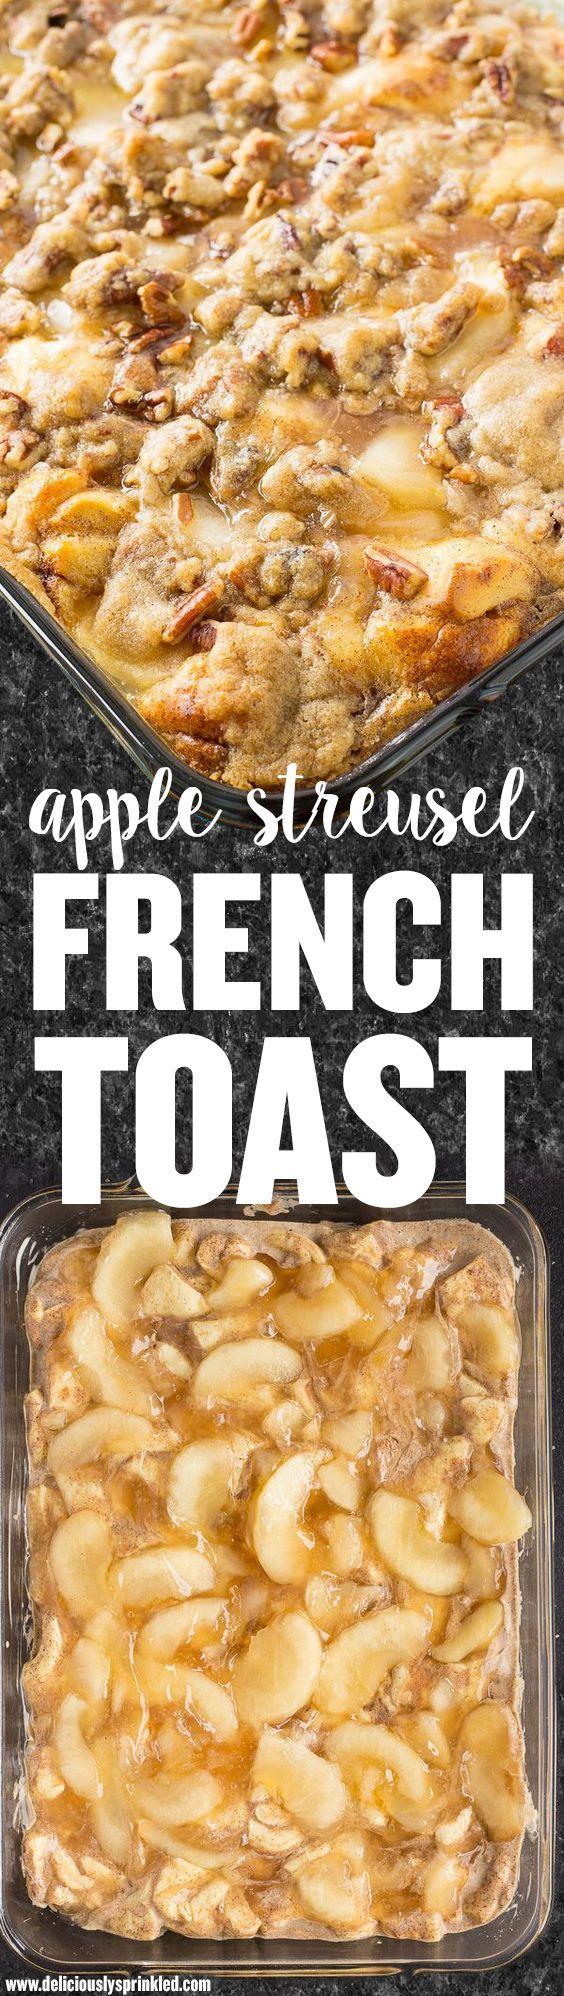 apple streusel french toast for a yummy over night bake breakfast or brunch for the whole family or feeding a large group. Try making with Jimmy John's Day Old Bread!